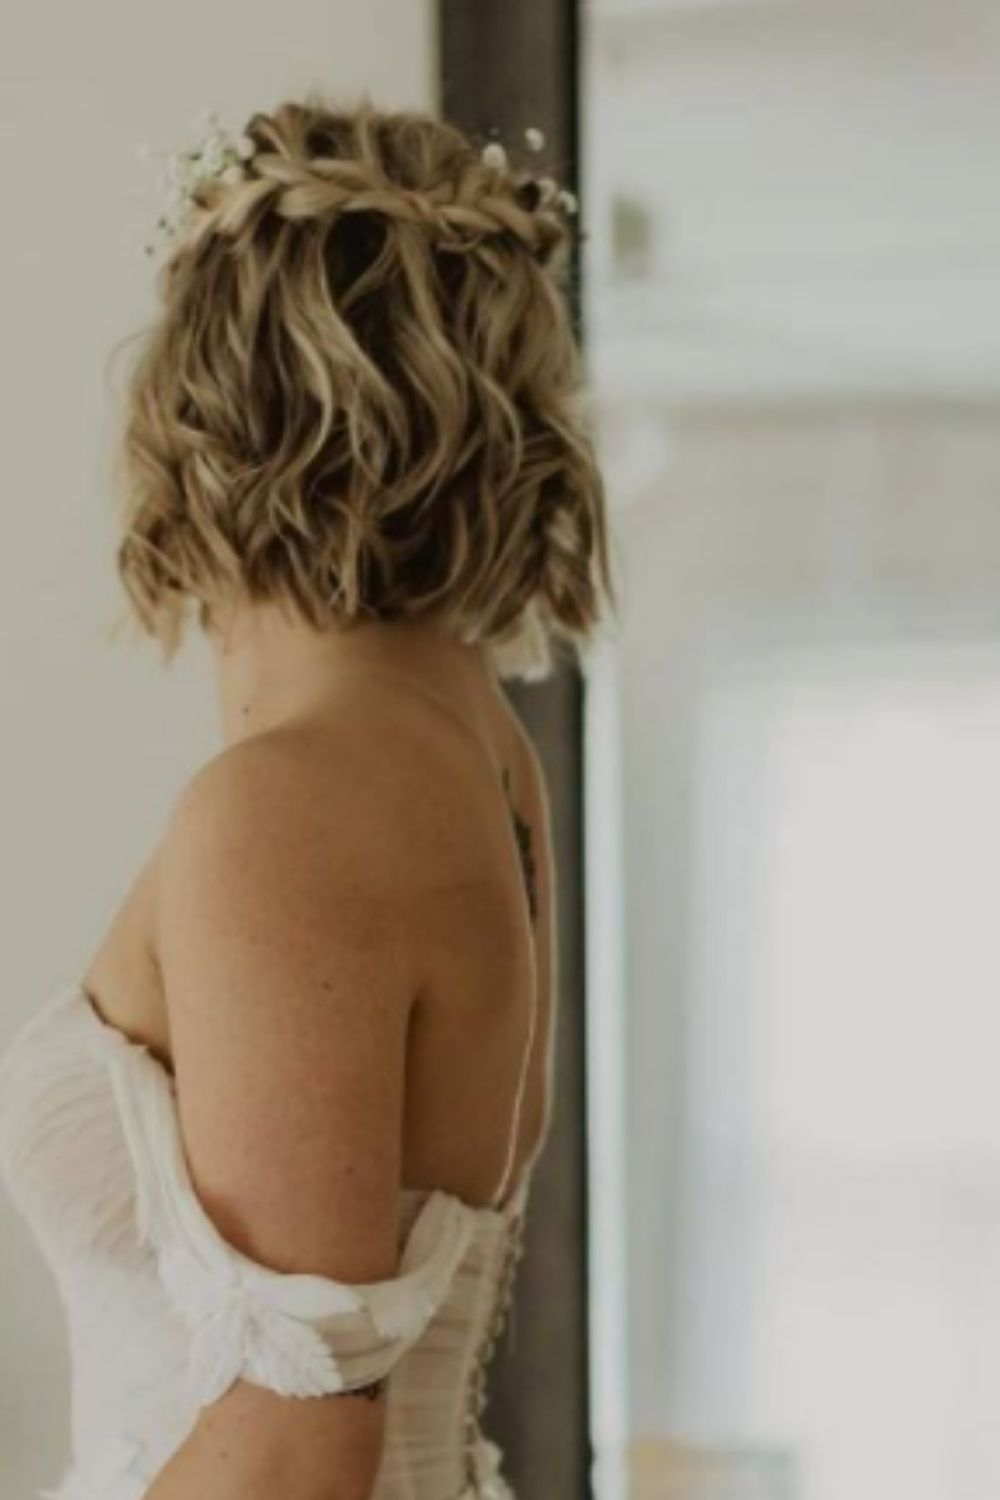 What is wedding hairstyles for short hair?